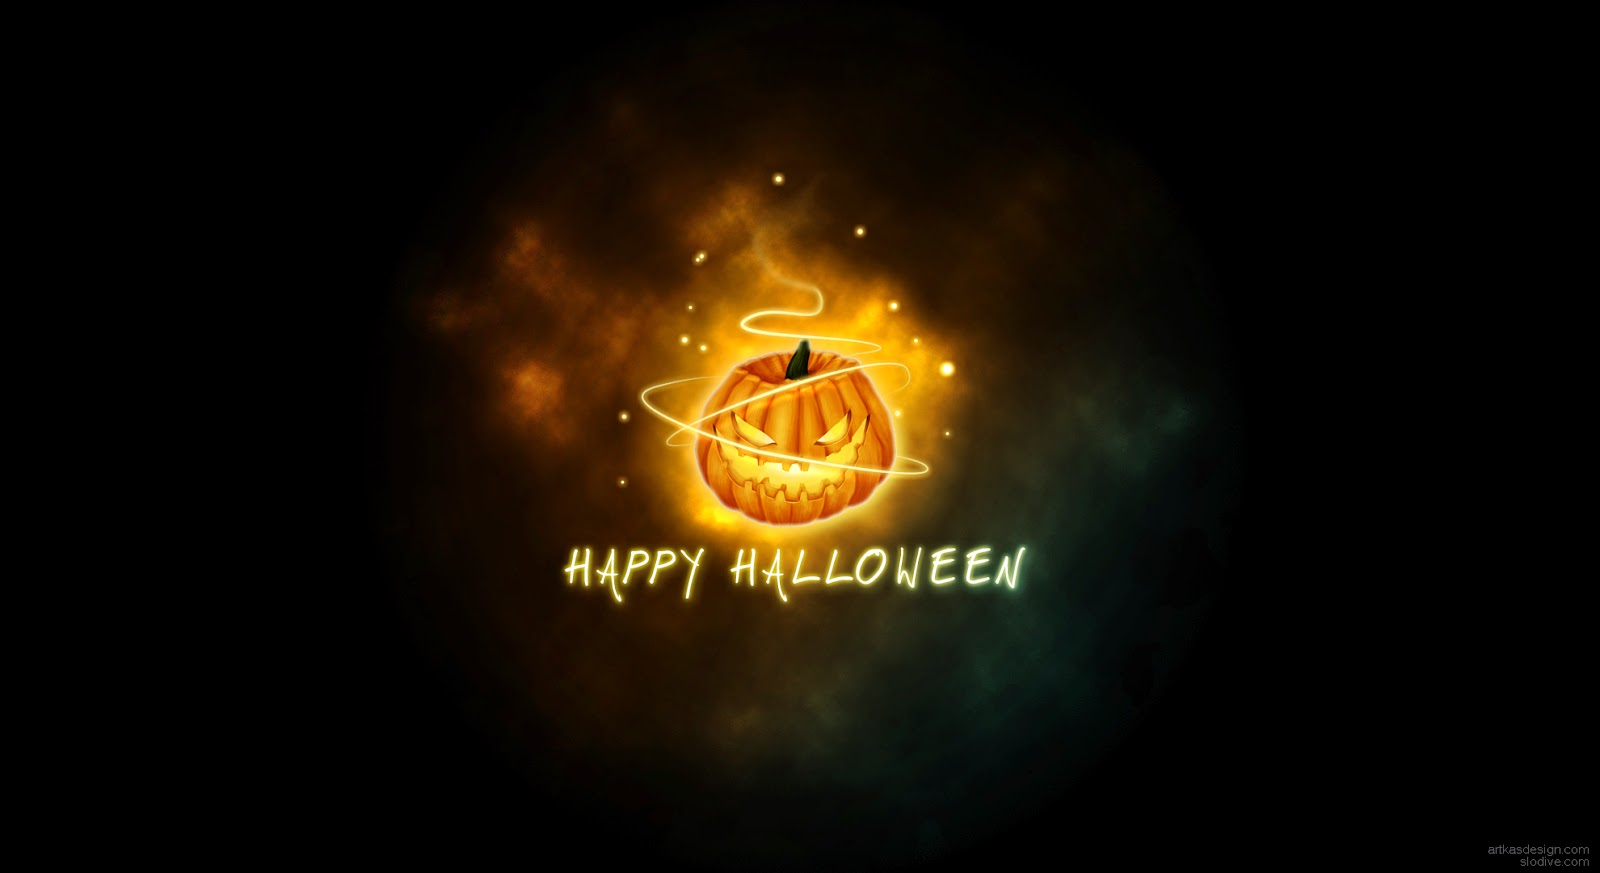 wallpapers-with-happy-halloween-text-quote-pictures-photos-images.jpg